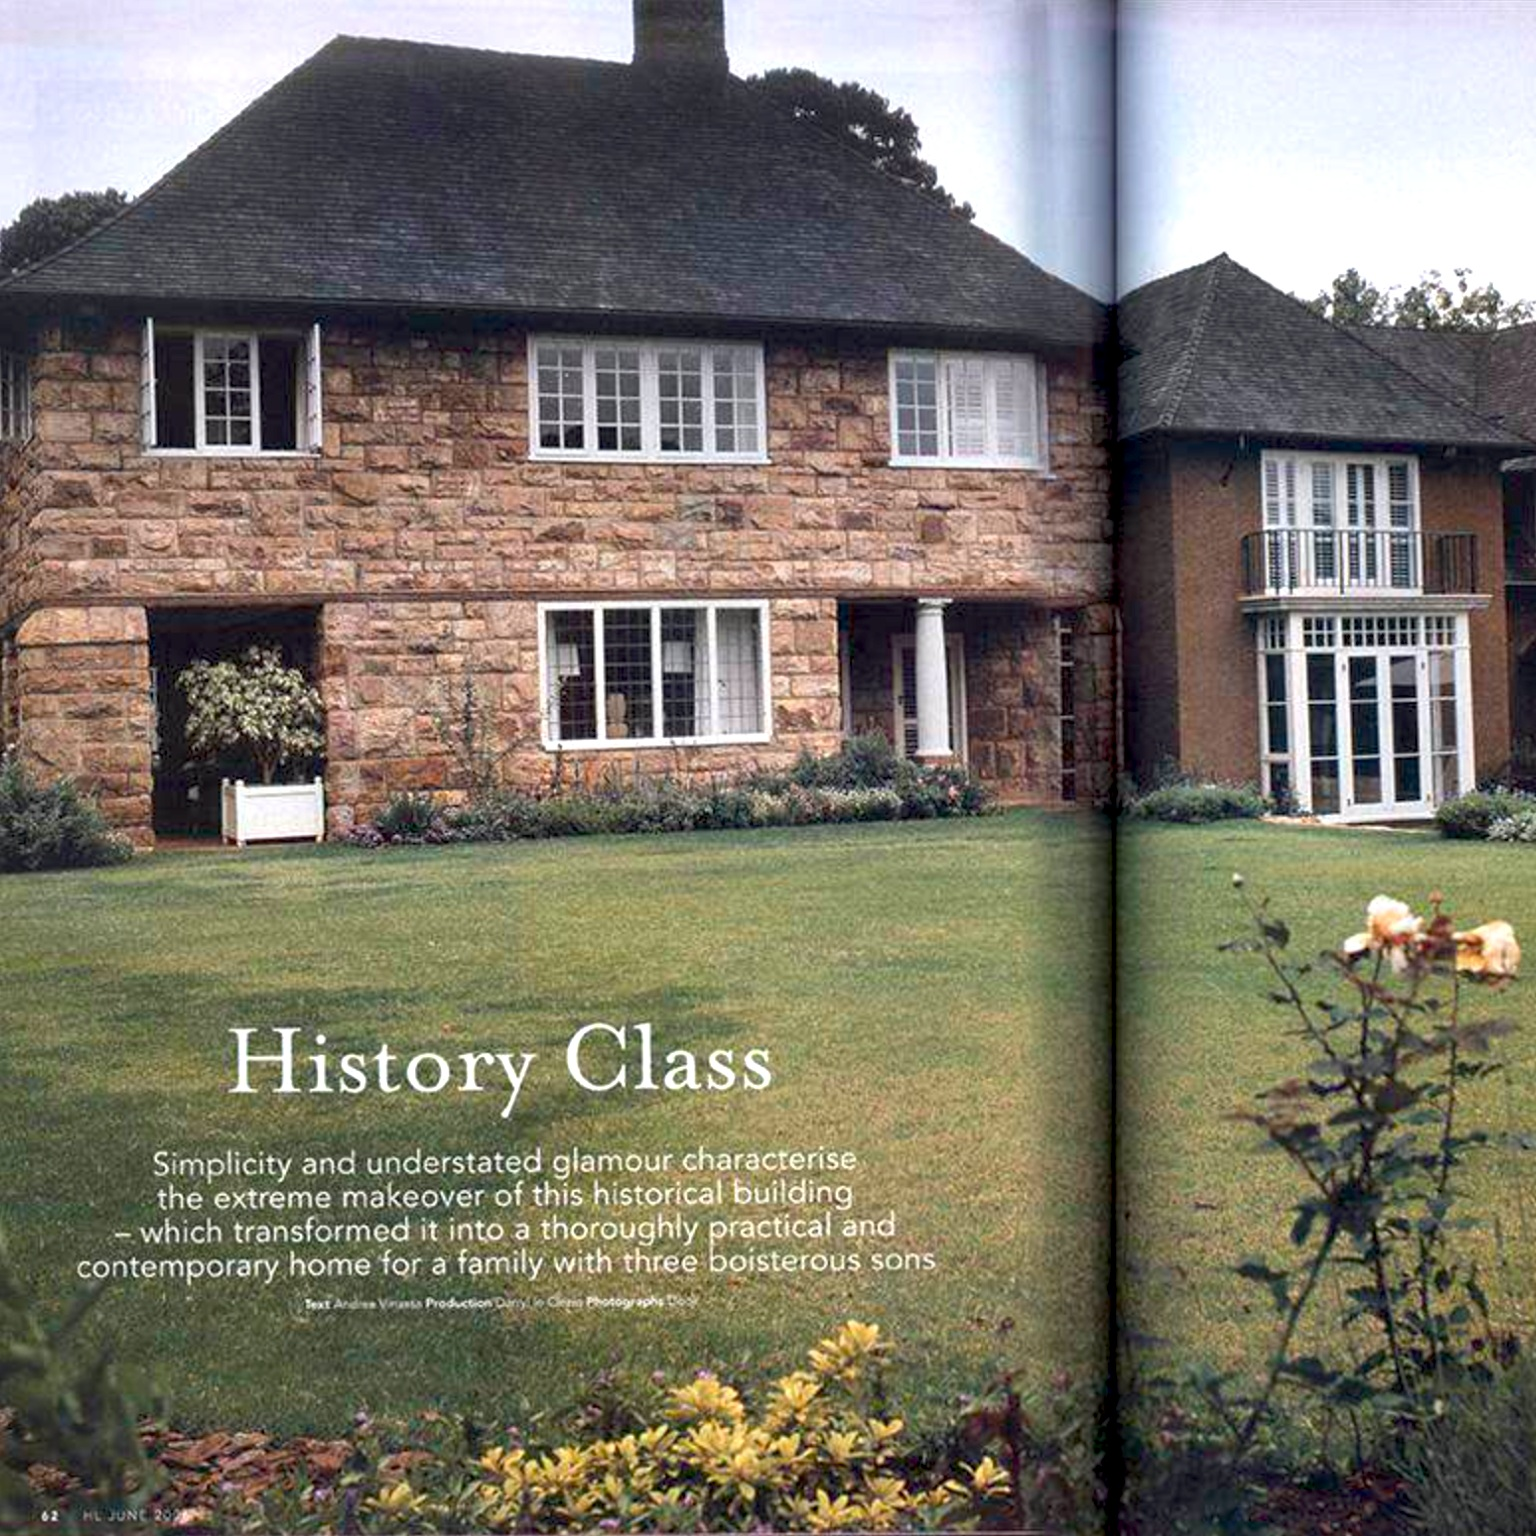 House of the month. House and Leisure.